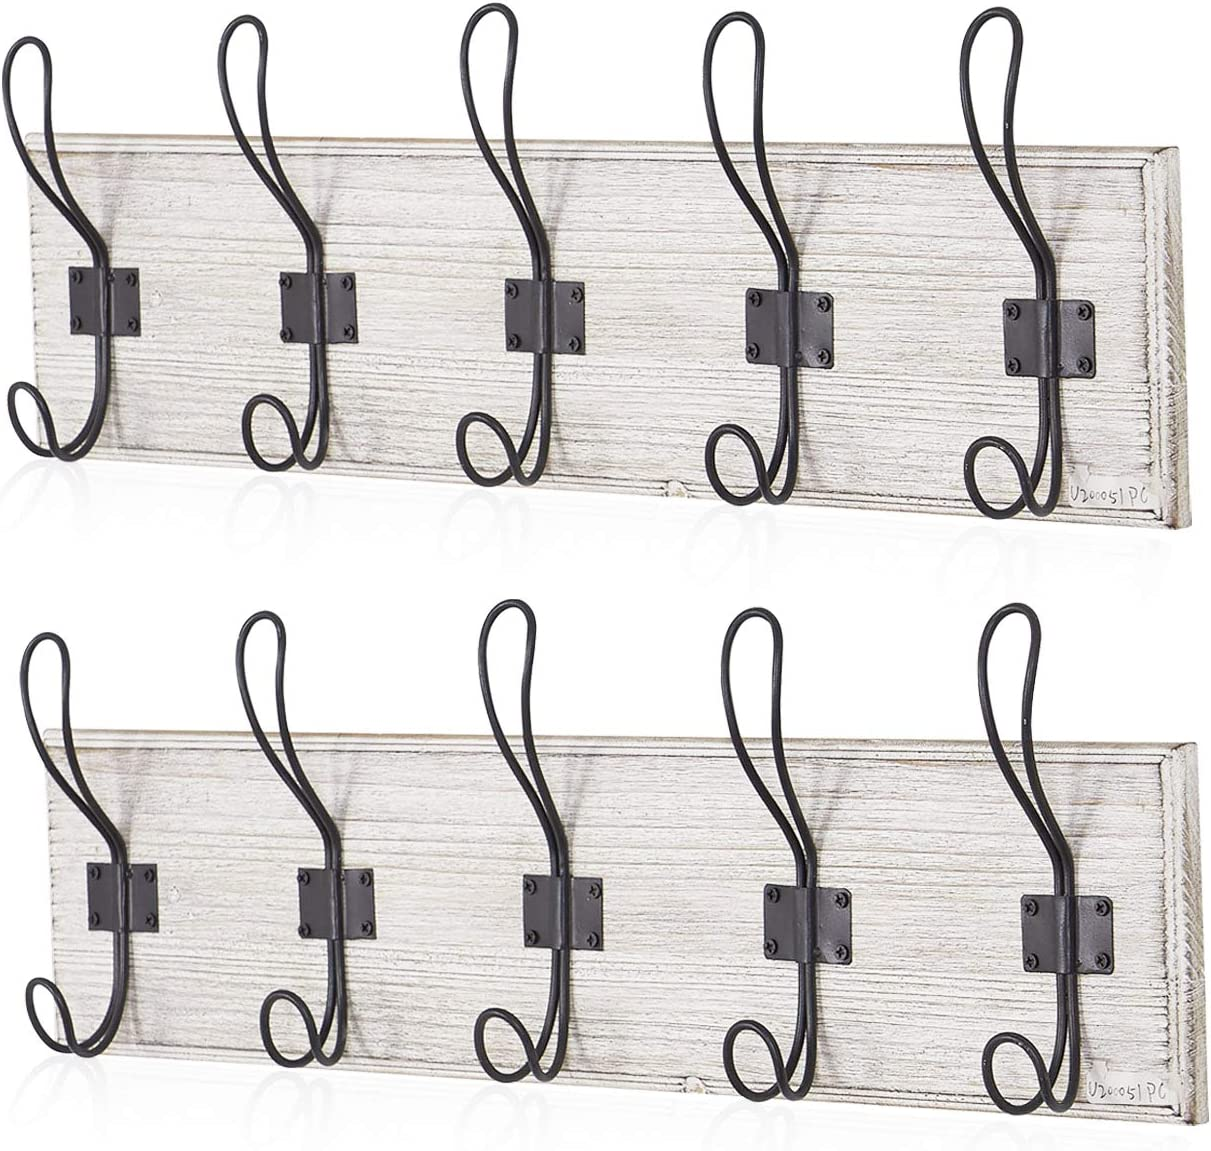 Rustic Coat Hat Wooden Rack Wall Mounted with 5 Hooks, for Entryway, Bathroom, Bedroom, Kitchen(Pack of 2)